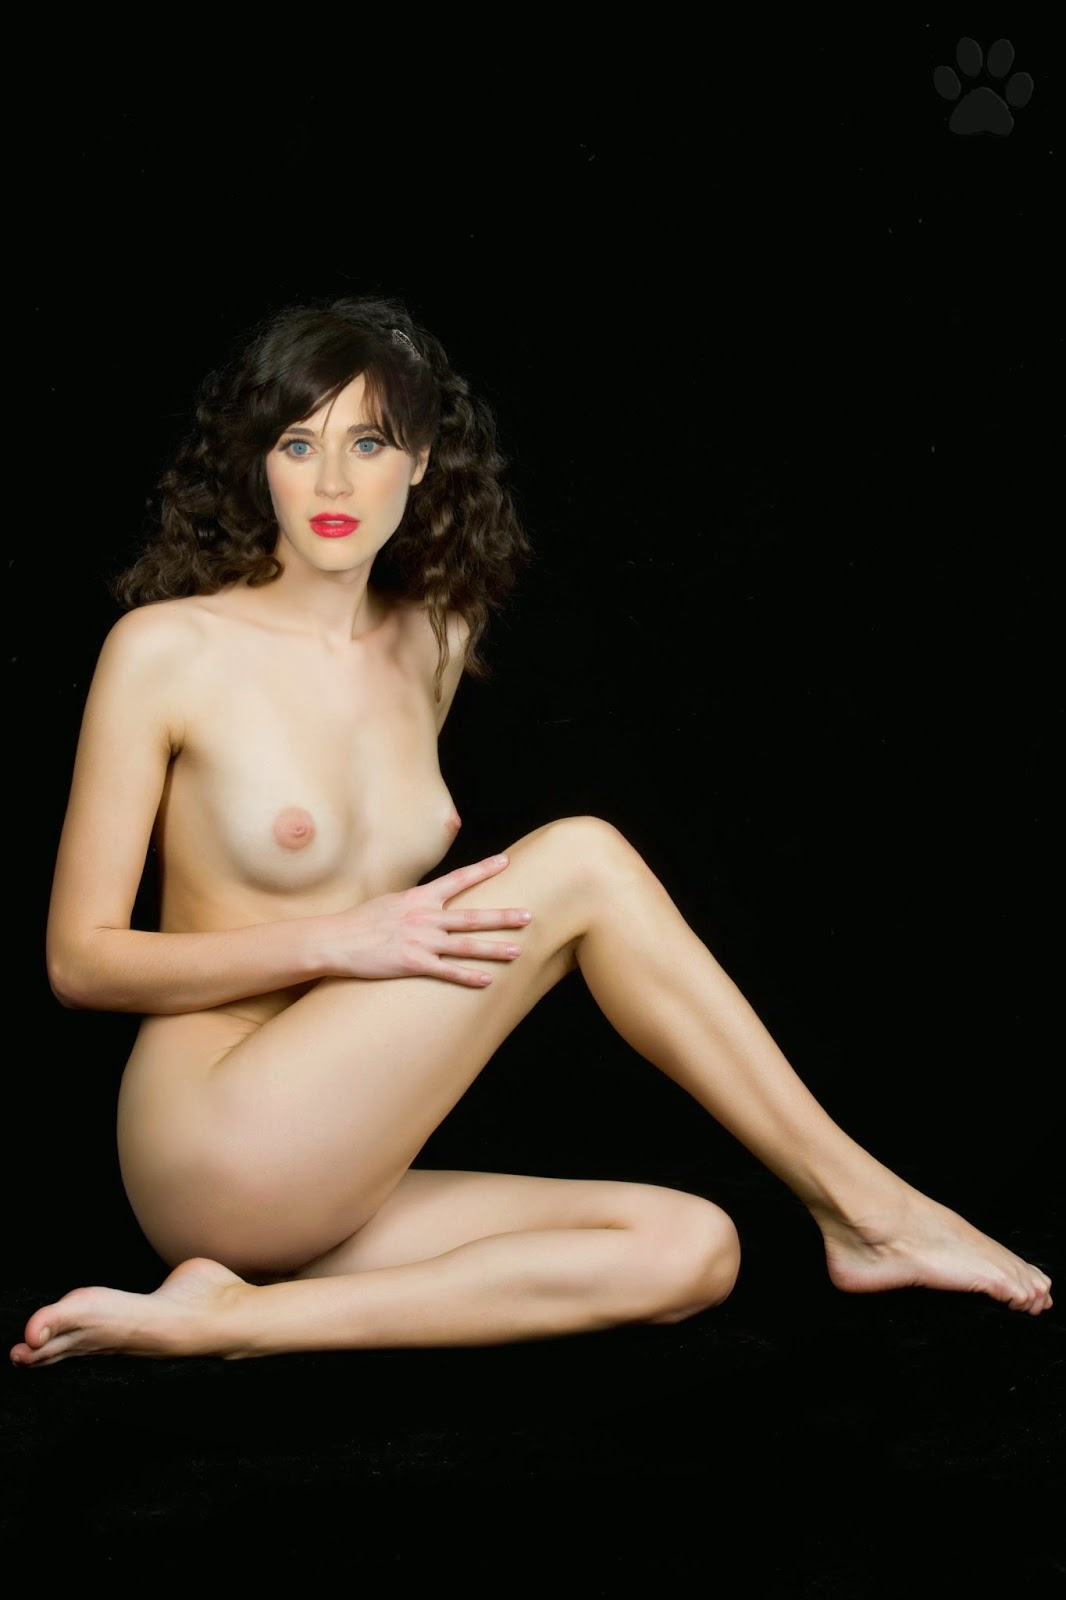 Nude zooey deschannel